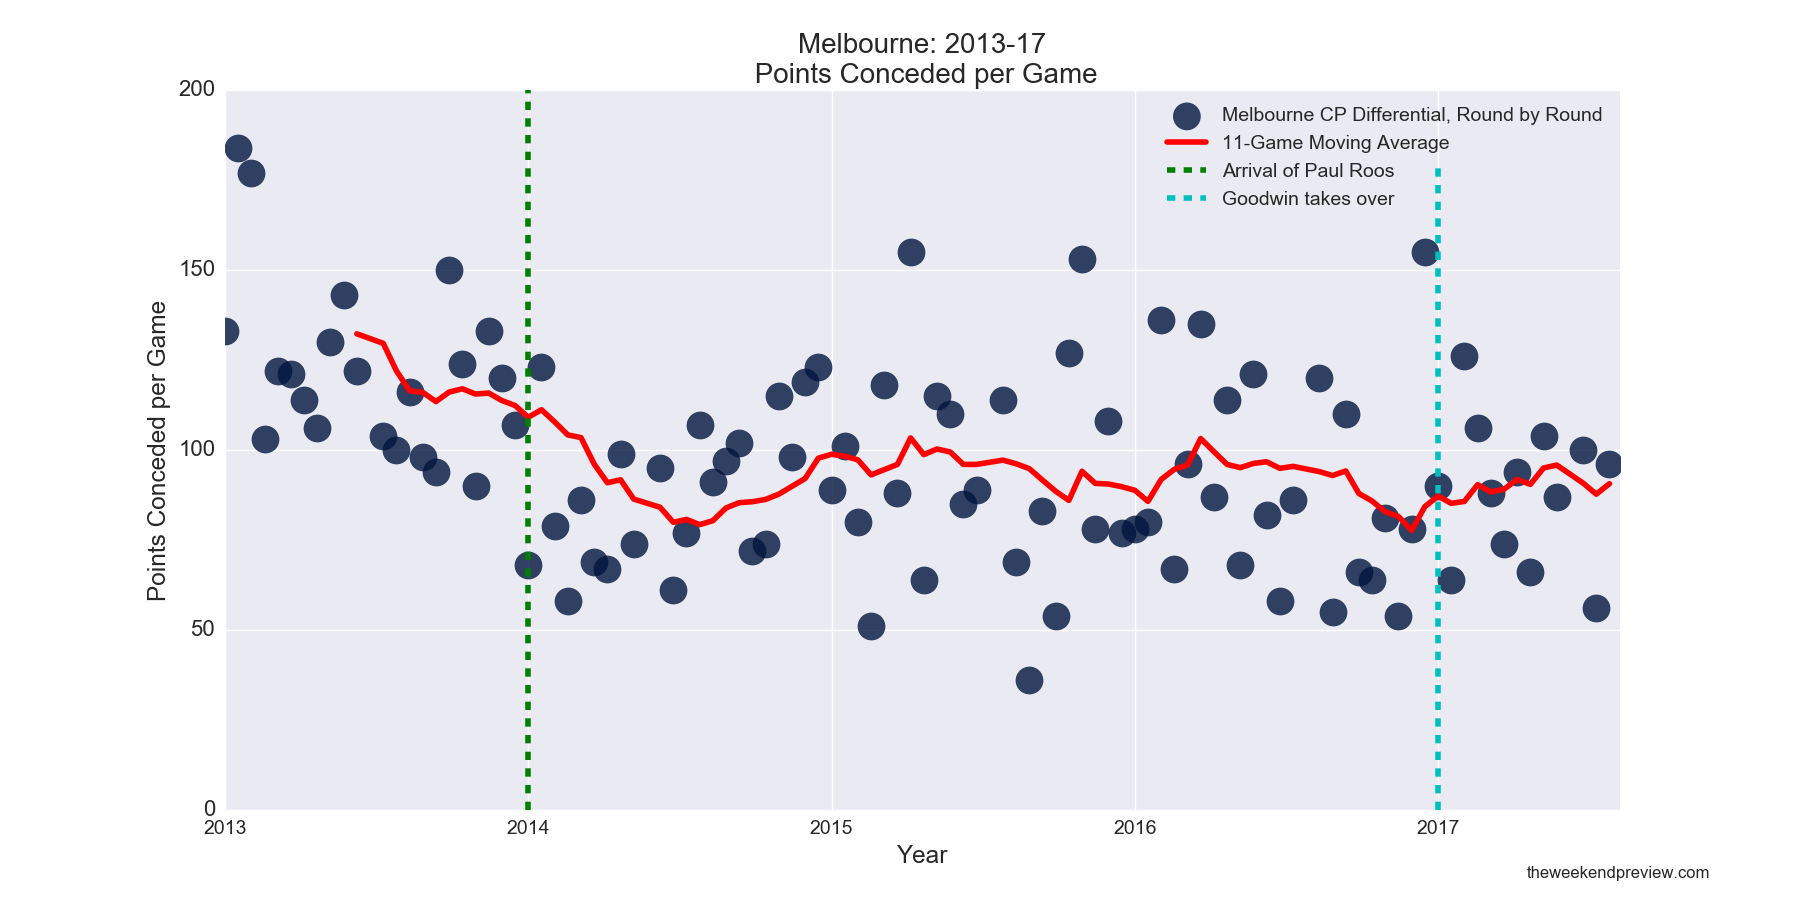 Figure-4: Melbourne Points Conceded in Paul Roos Era